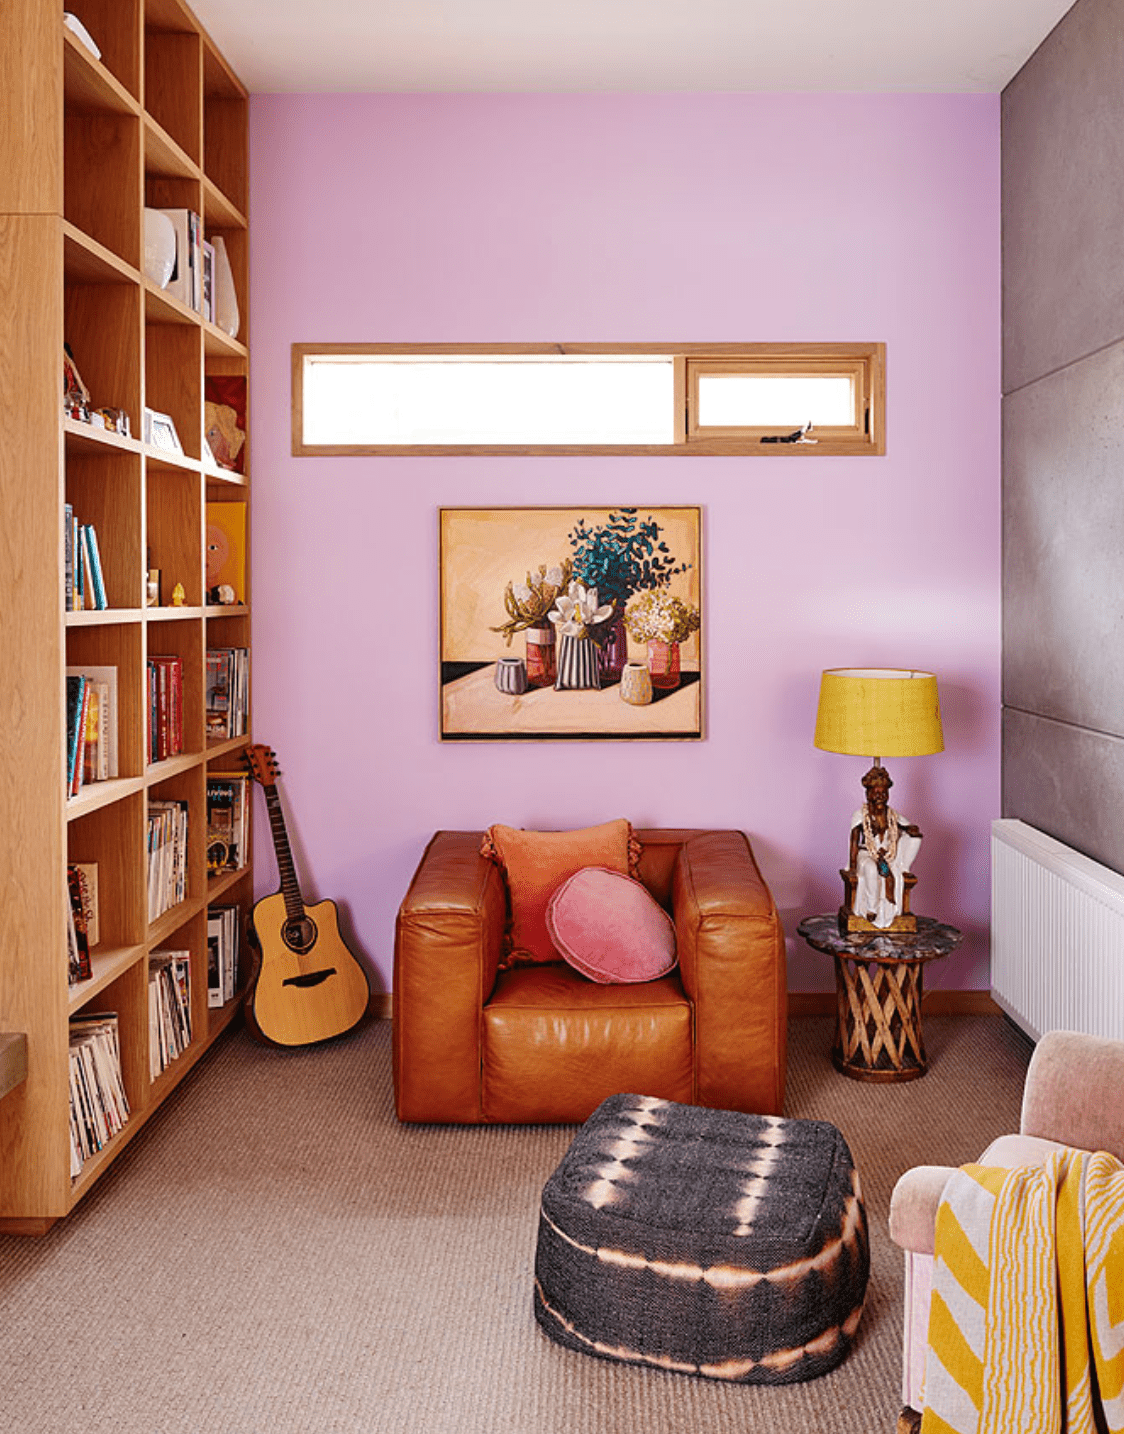 Bohemian-inspired living room with pink accent wall